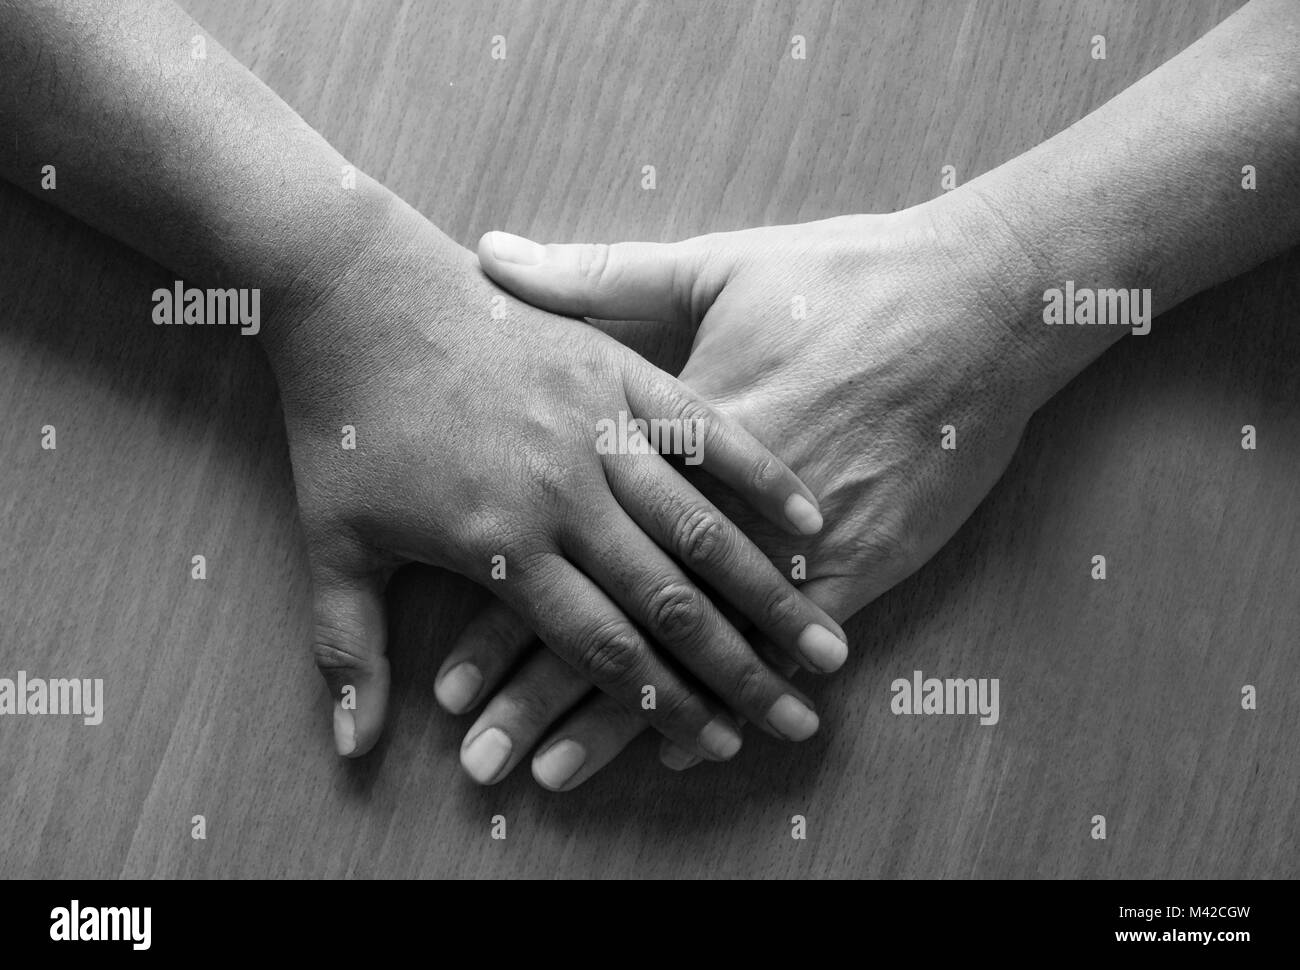 looking down on two fifty year old female hands and lower arms placed ontop of each other, the top hand is Asian - Stock Image